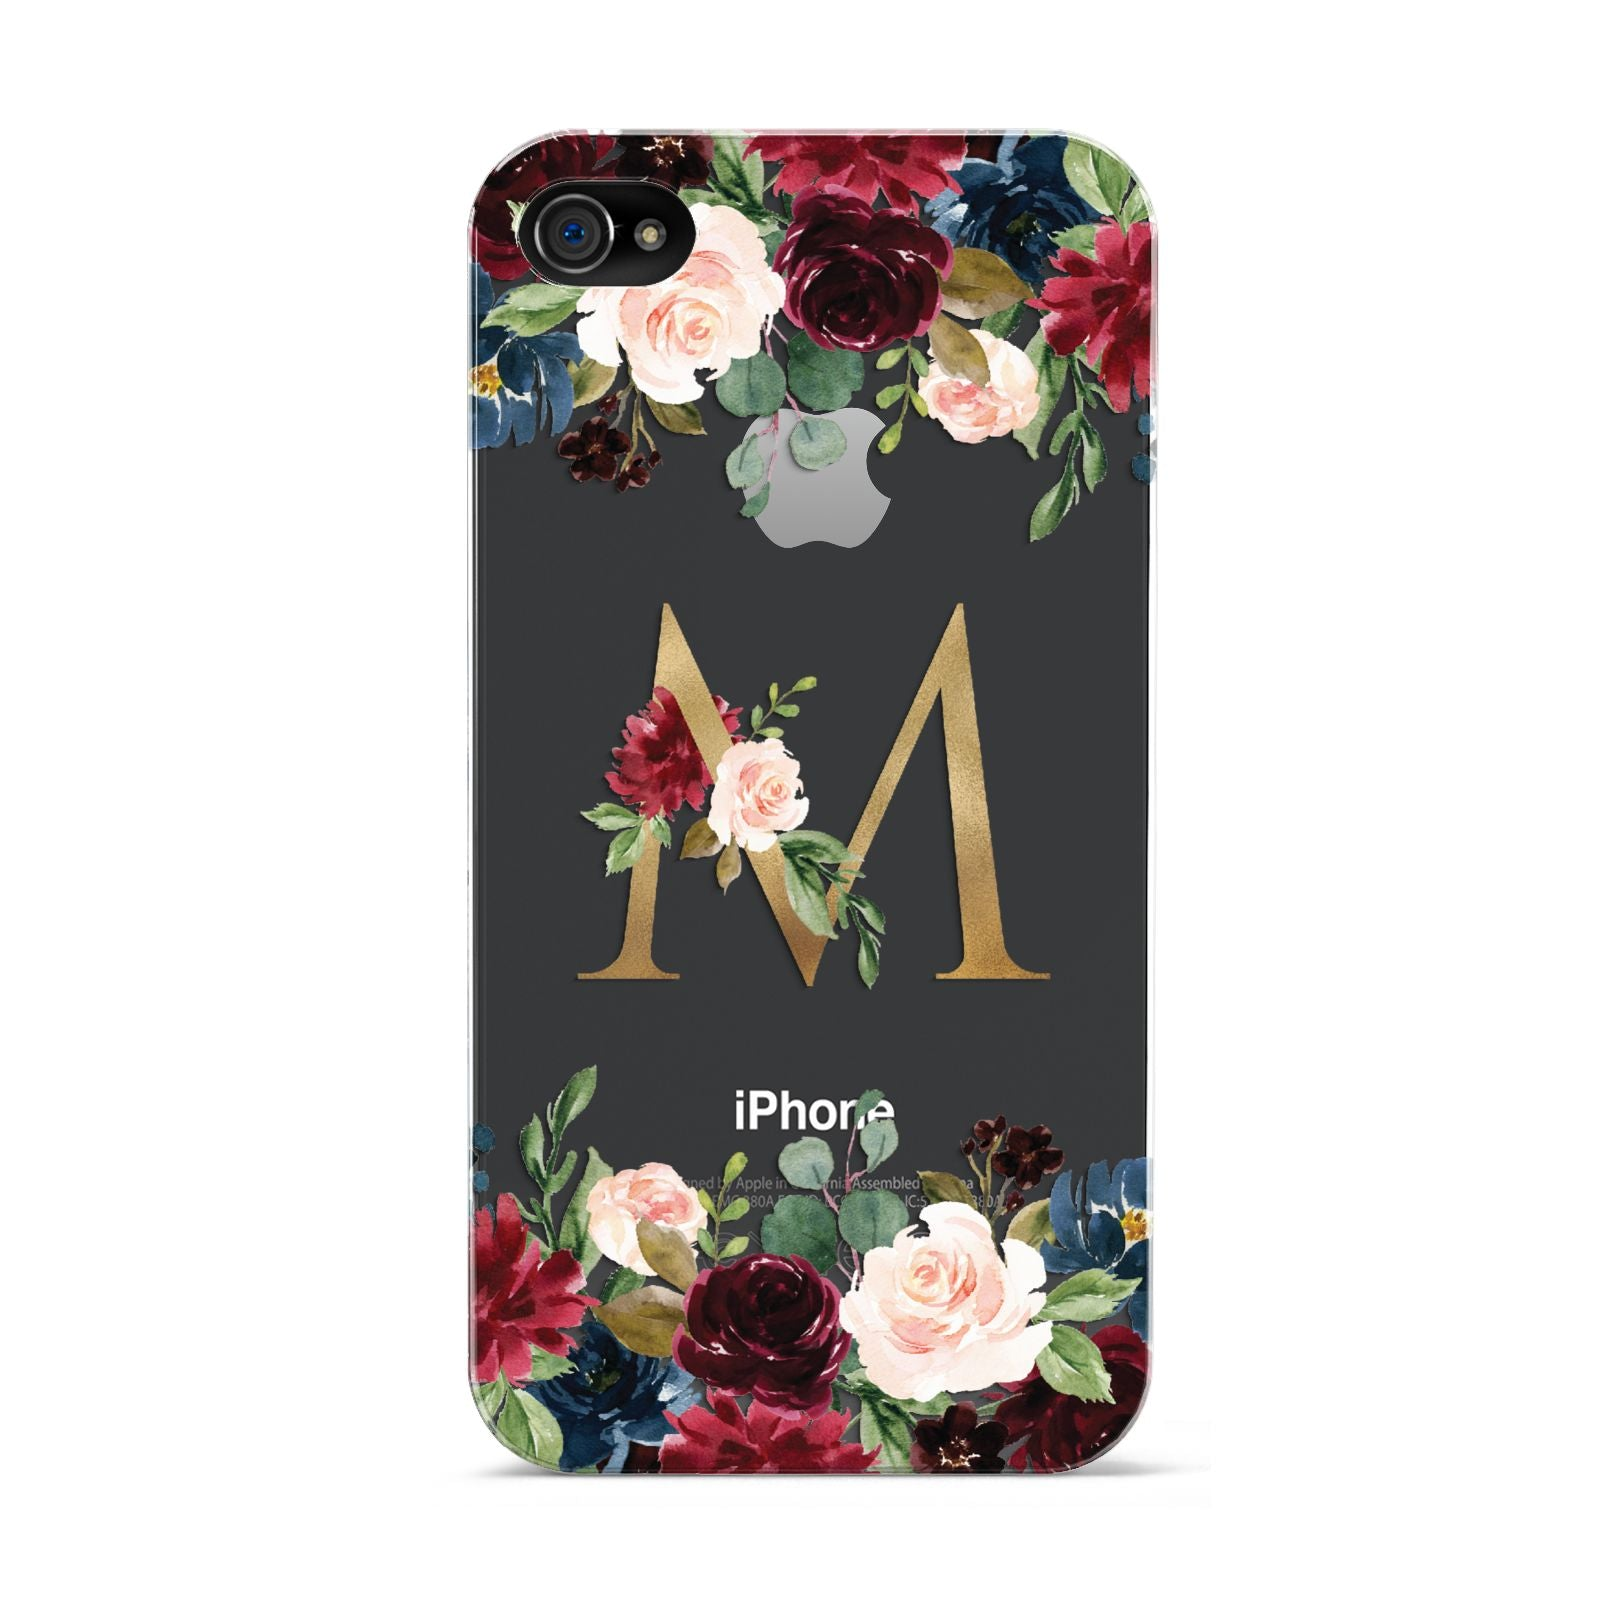 Personalised Clear Monogram Floral Apple iPhone 4s Case